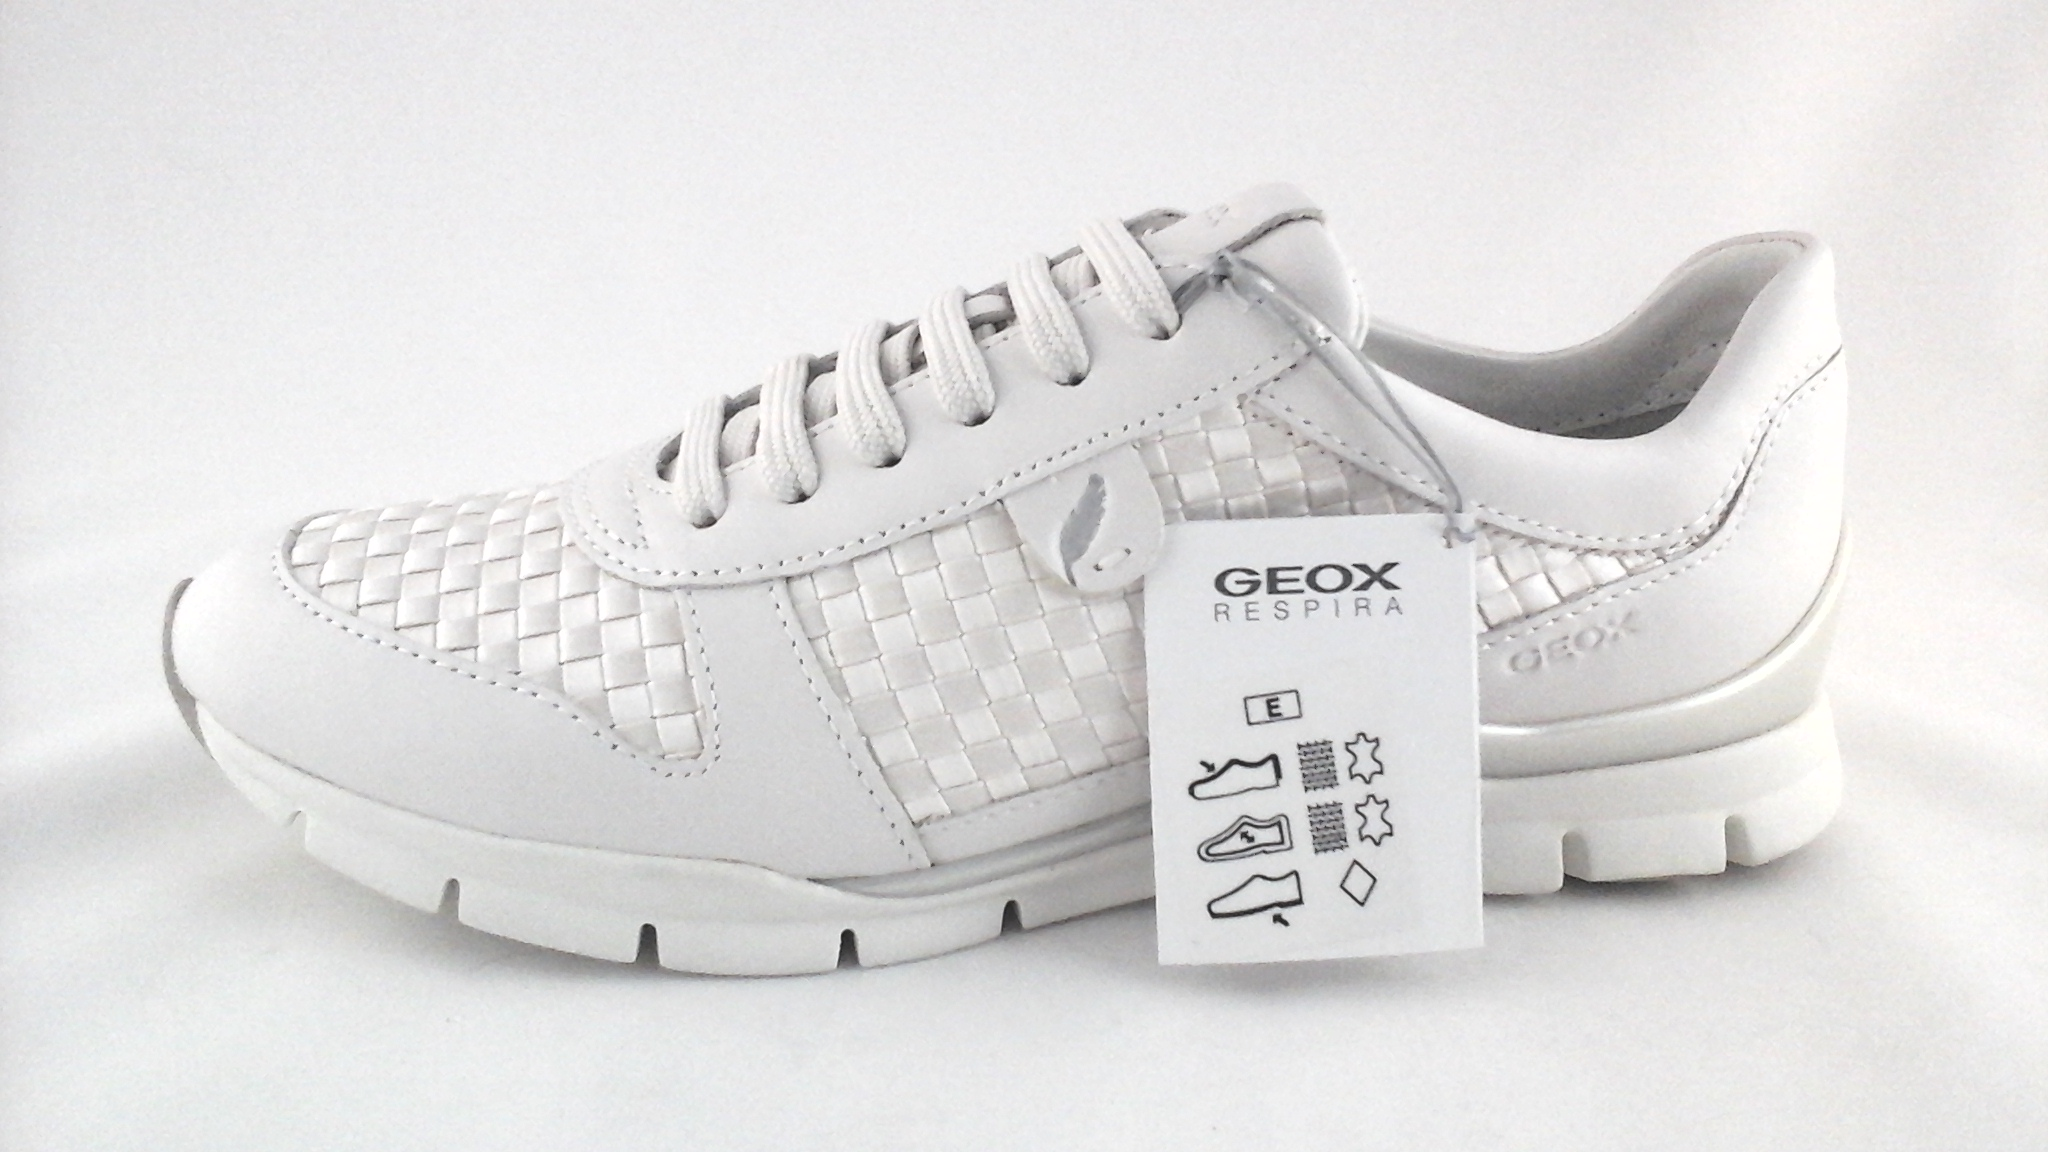 Details about Geox Respira D52F2A Women's Comfort Walking Sport Shoes Pearl US 7 EU 37 New